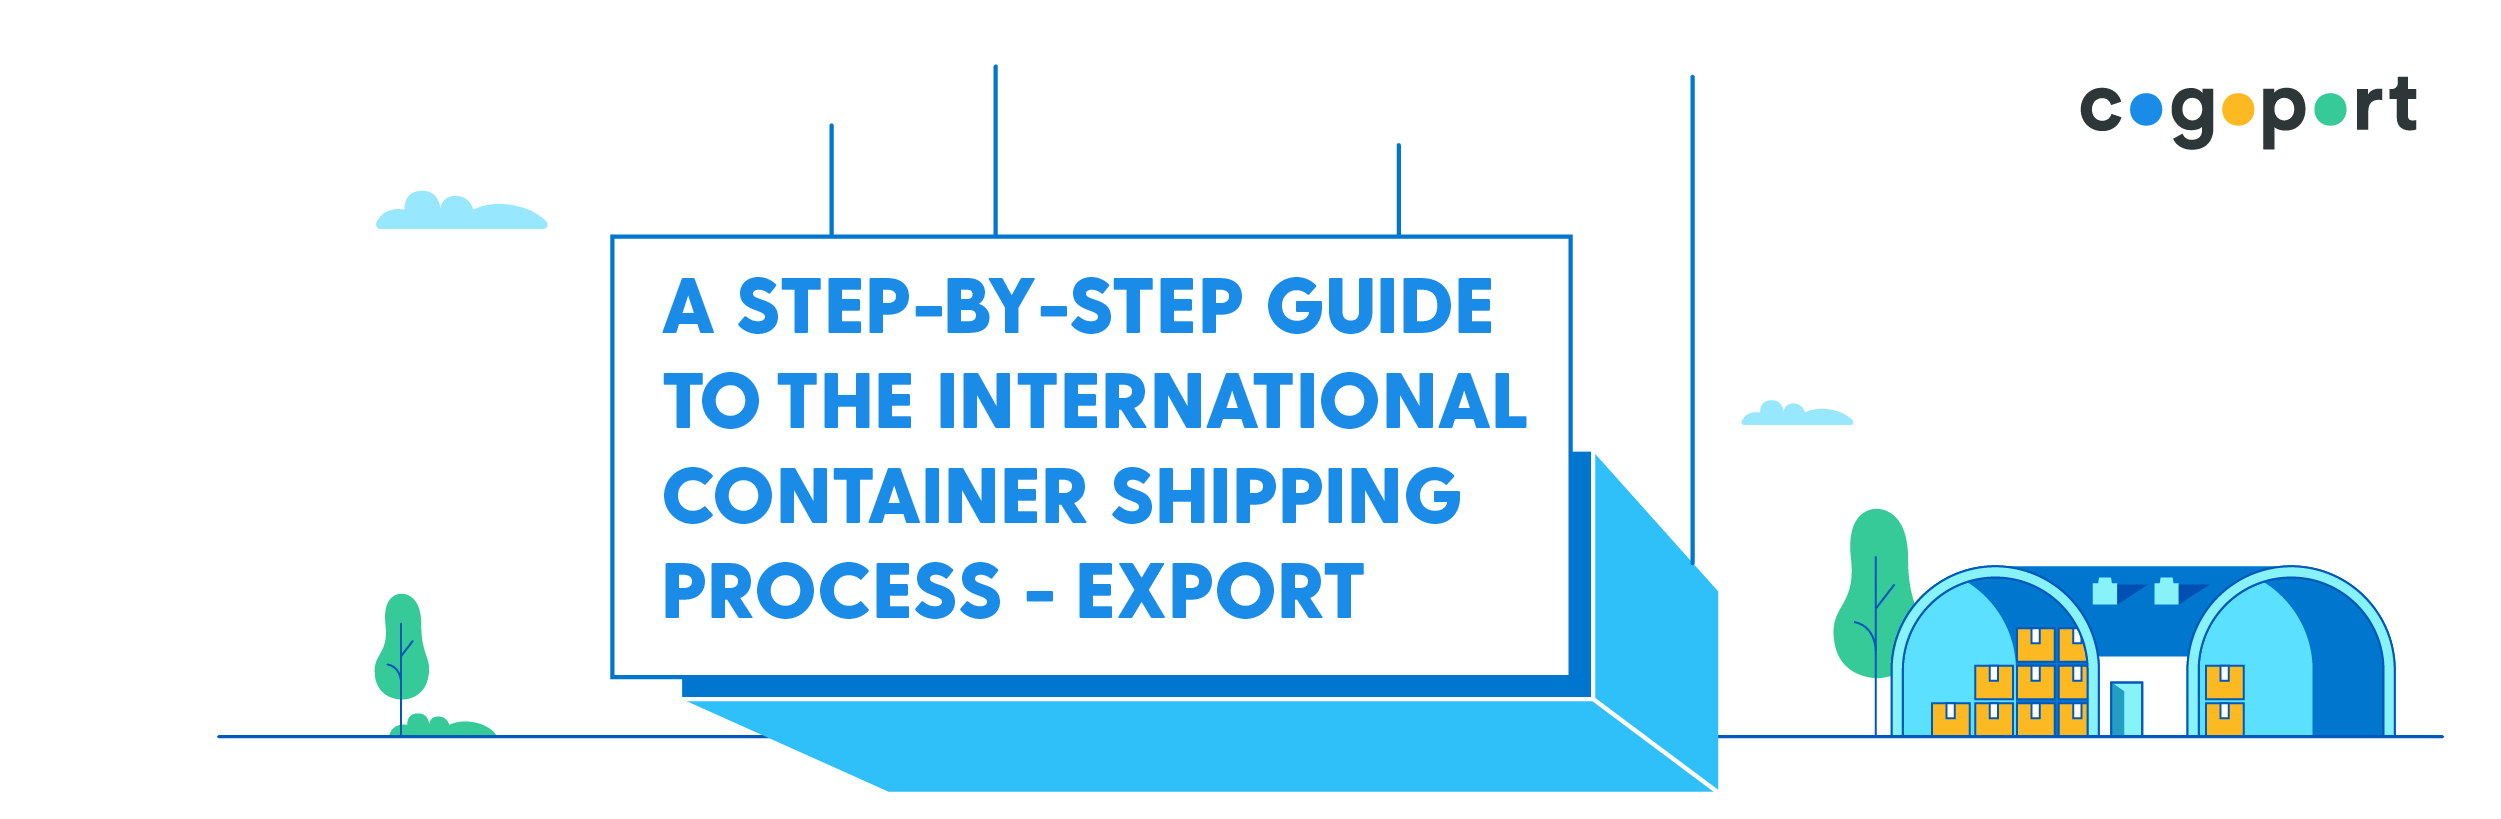 A Step-by-Step Guide to the International Container Shipping Process - Export